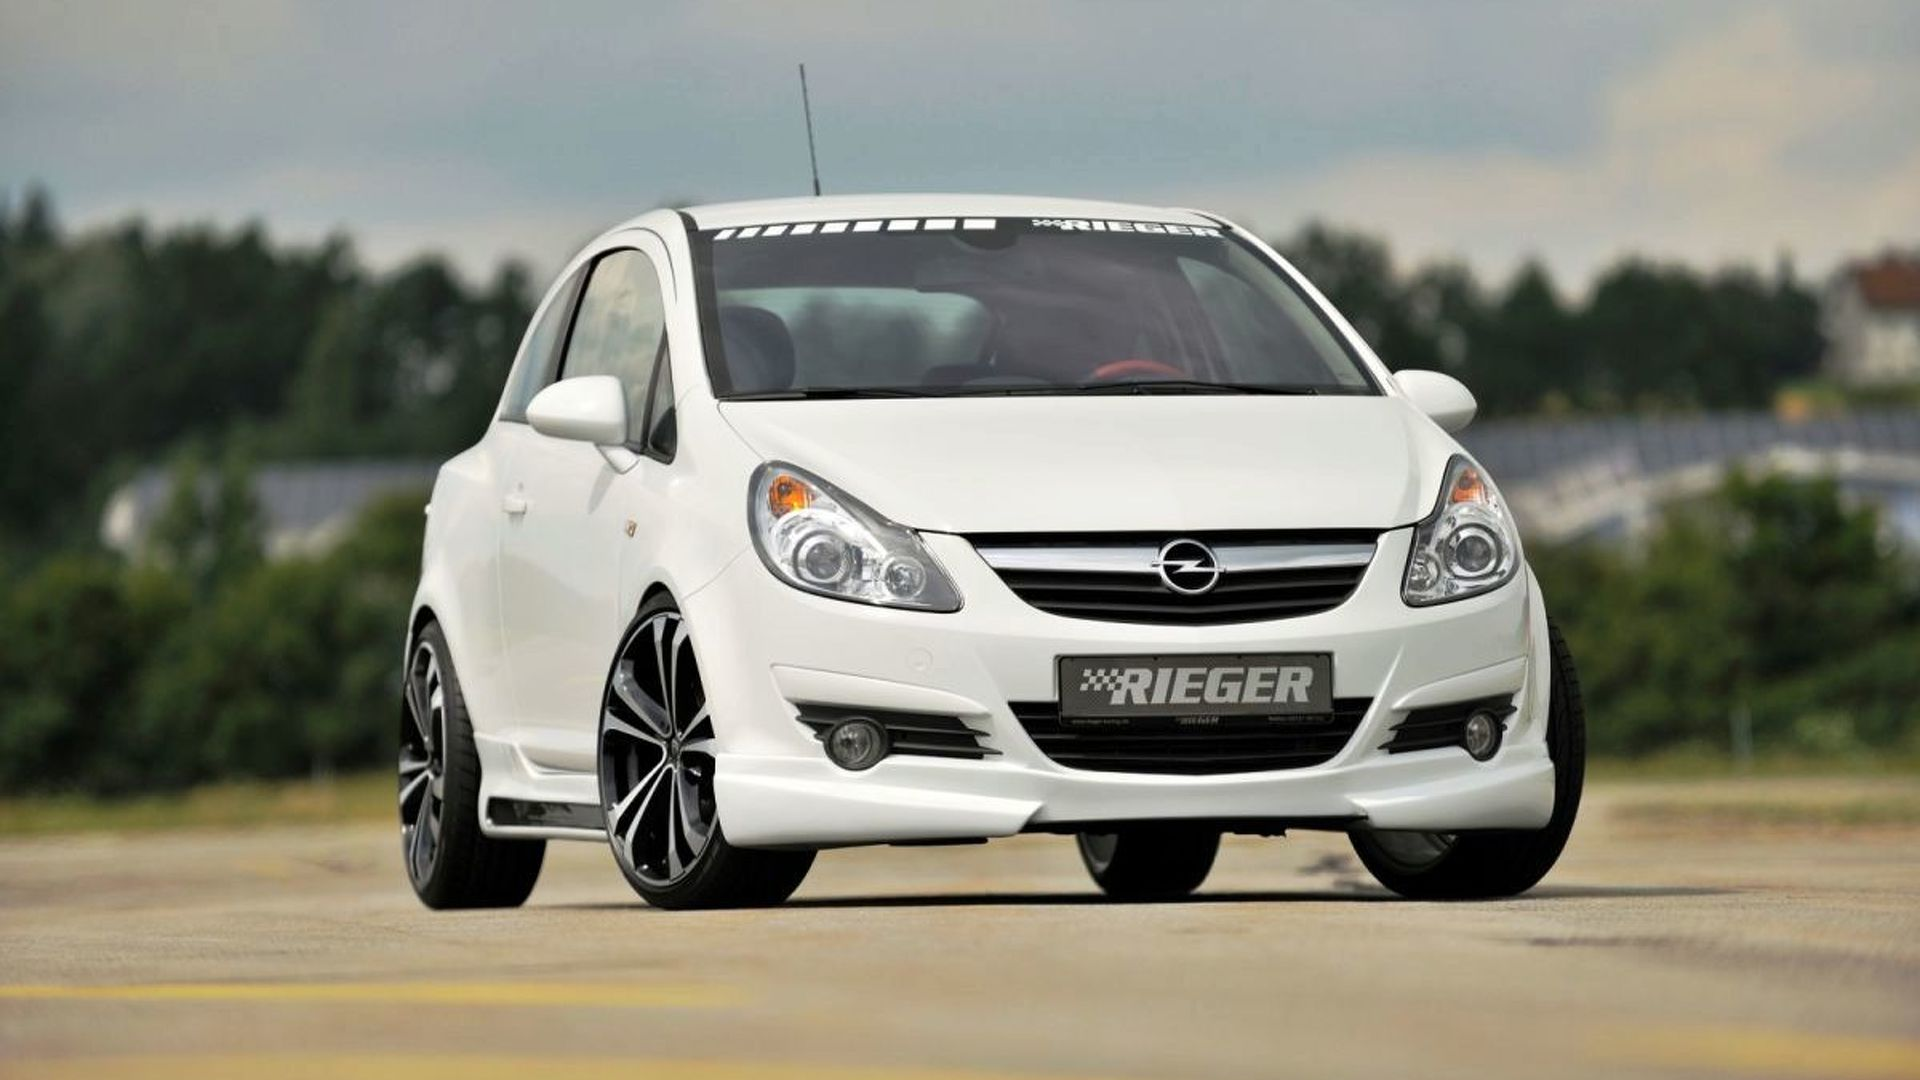 277a831a0 RIEGER offers new styling kit for Astra H and Corsa D